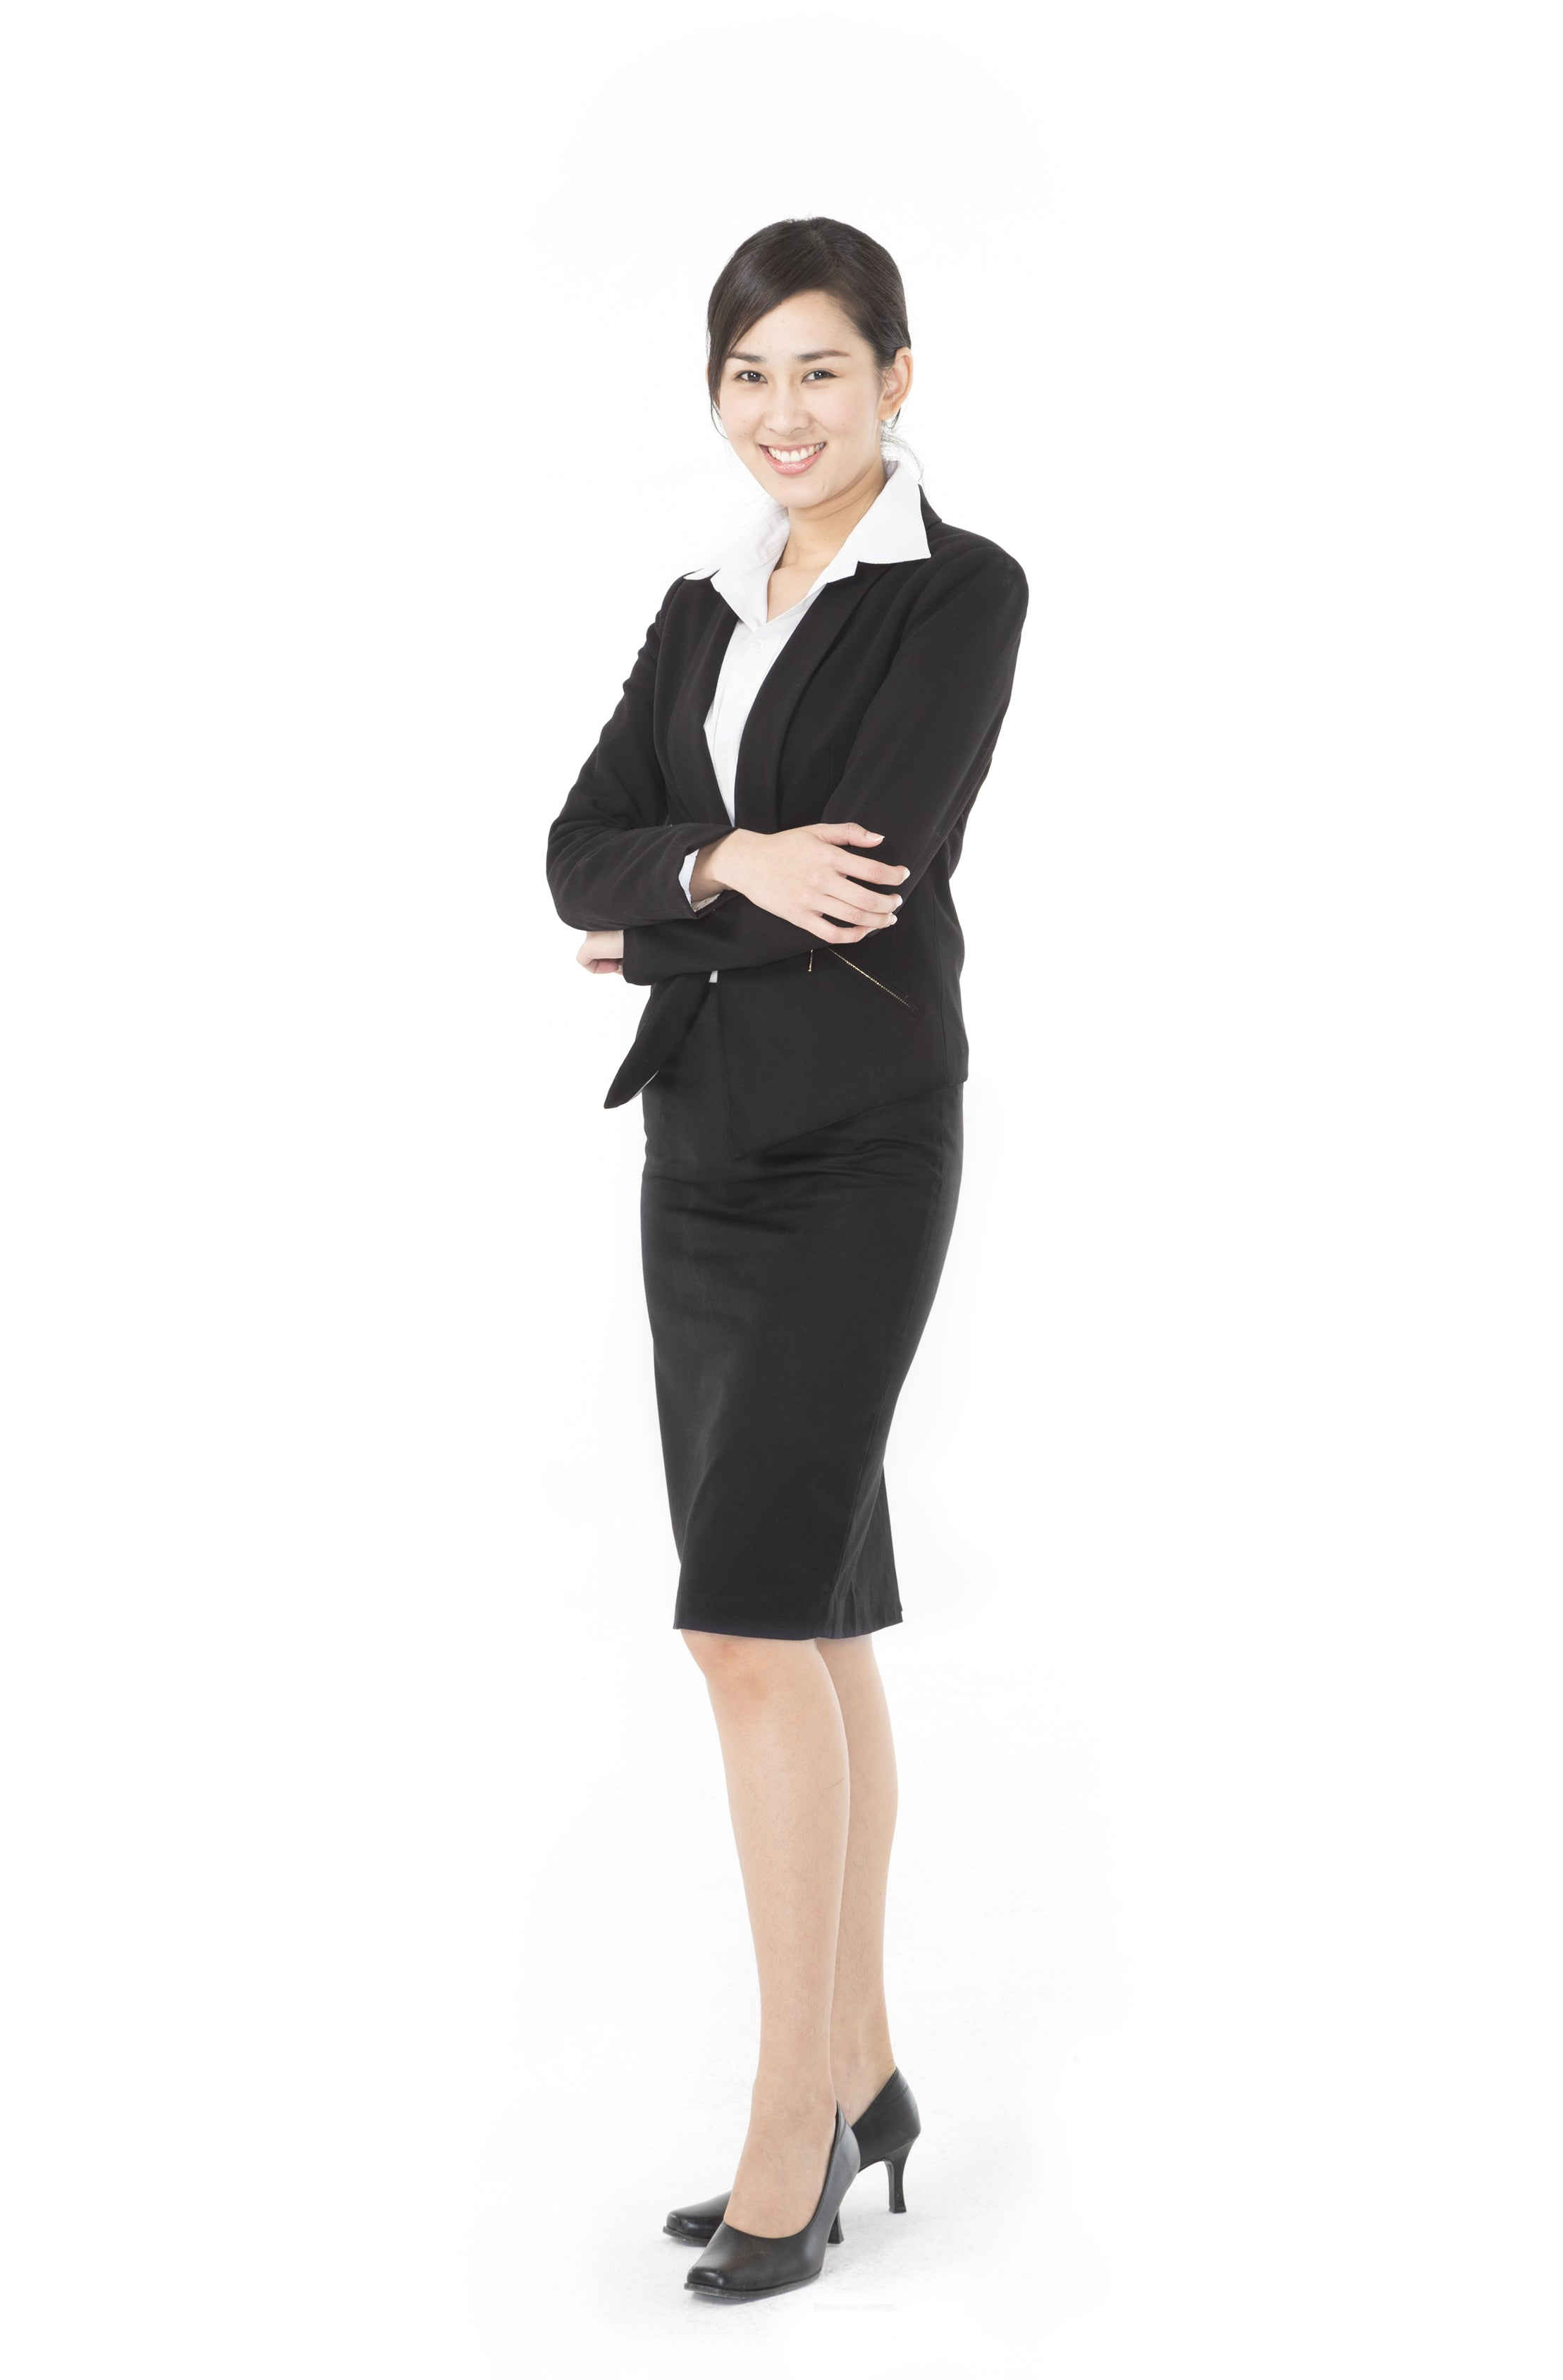 Woman with formal corporate attire